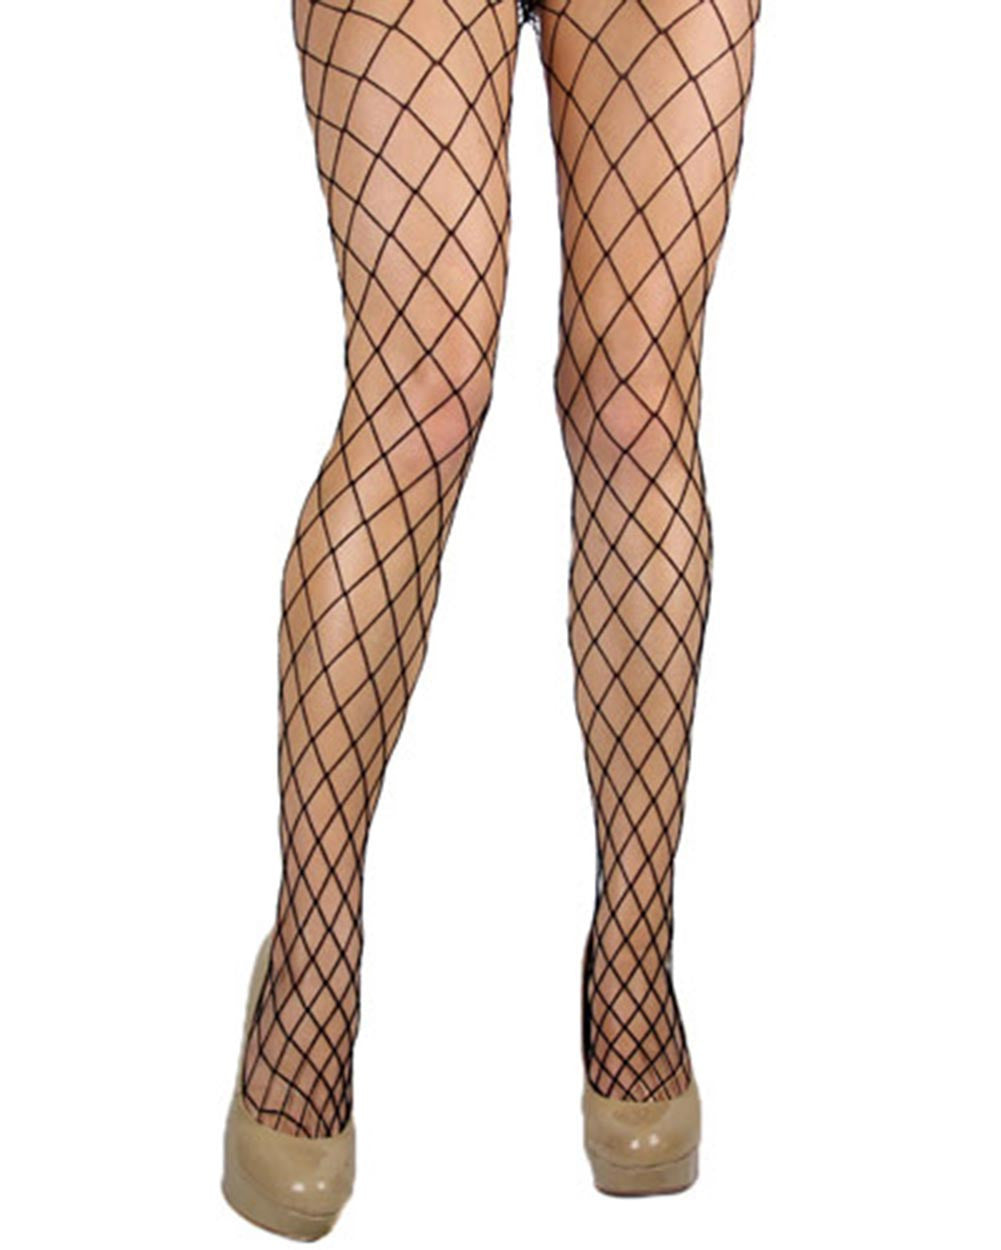 4a15f95ce0 Women s Rave Hosiery and Leg Wraps tagged